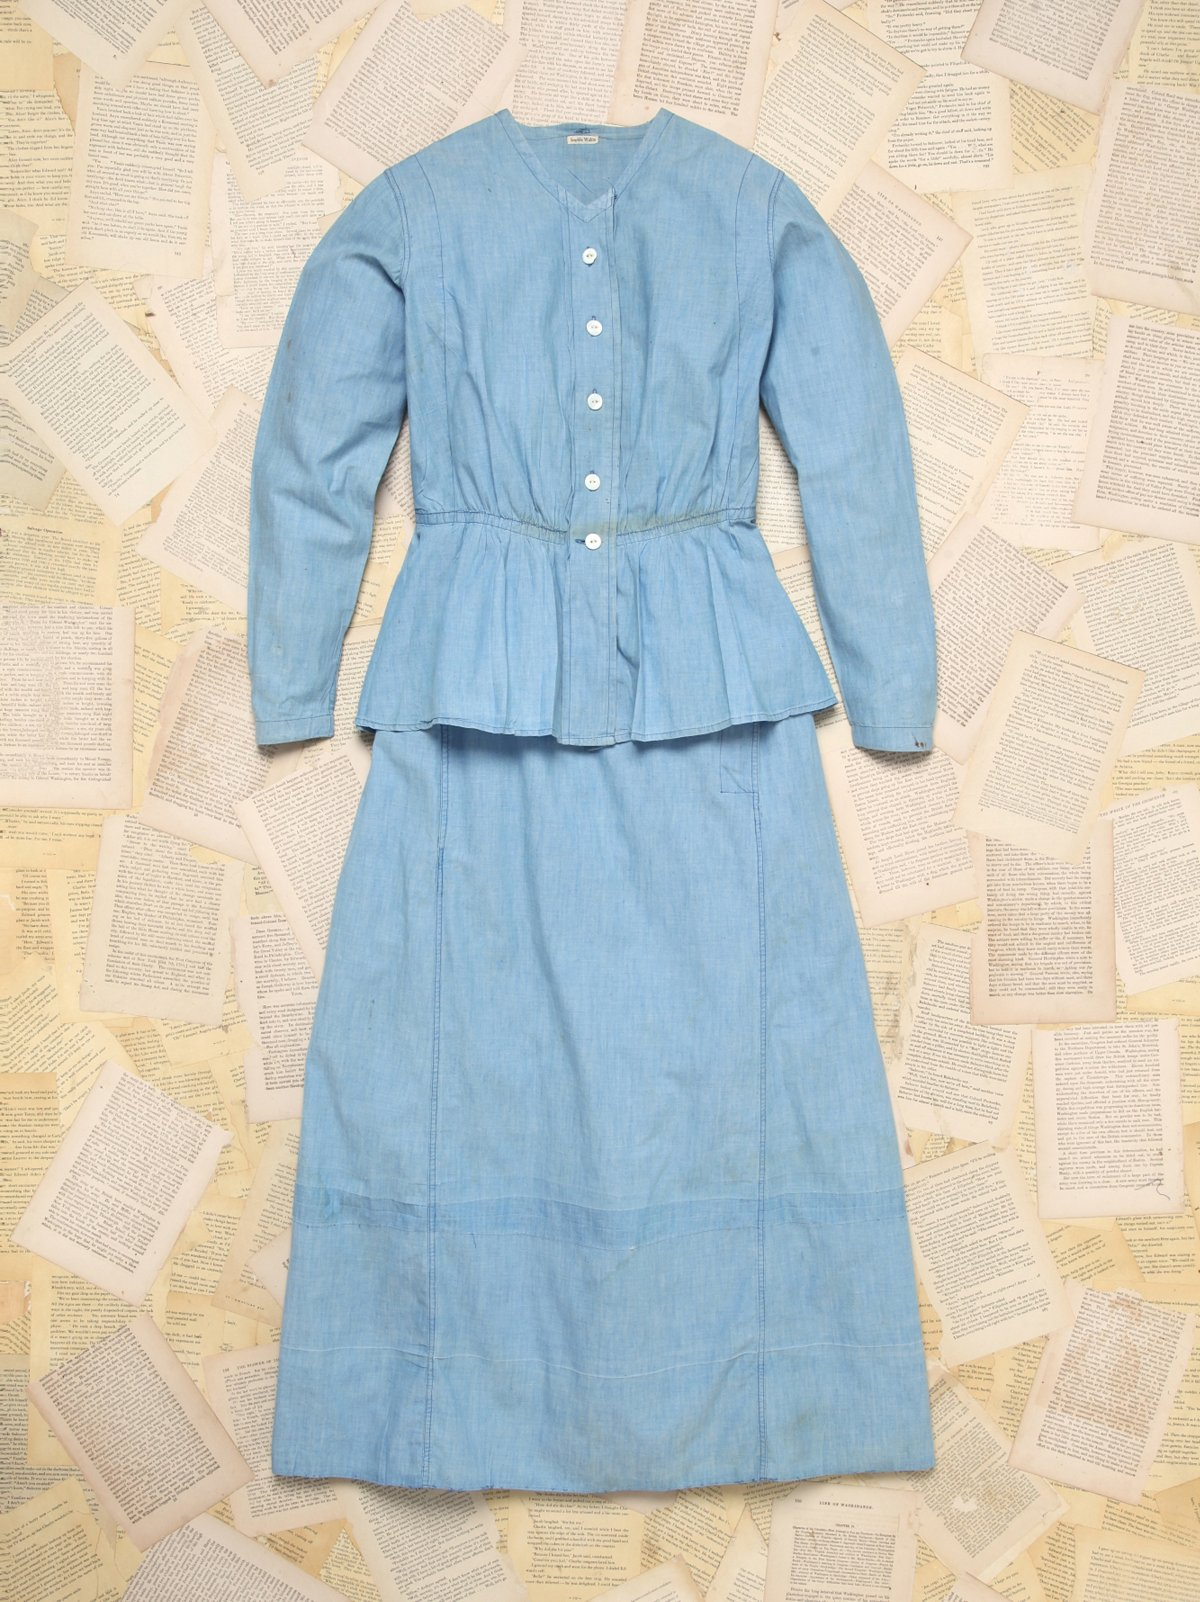 Vintage Chambray Woman's Work Uniform